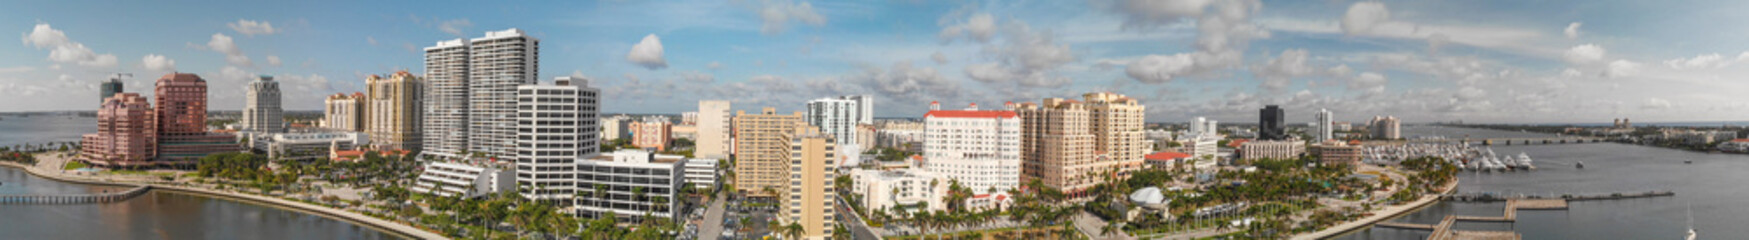 Palm Beach skyline, Florida. Panoramic aerial view from drone at sunset